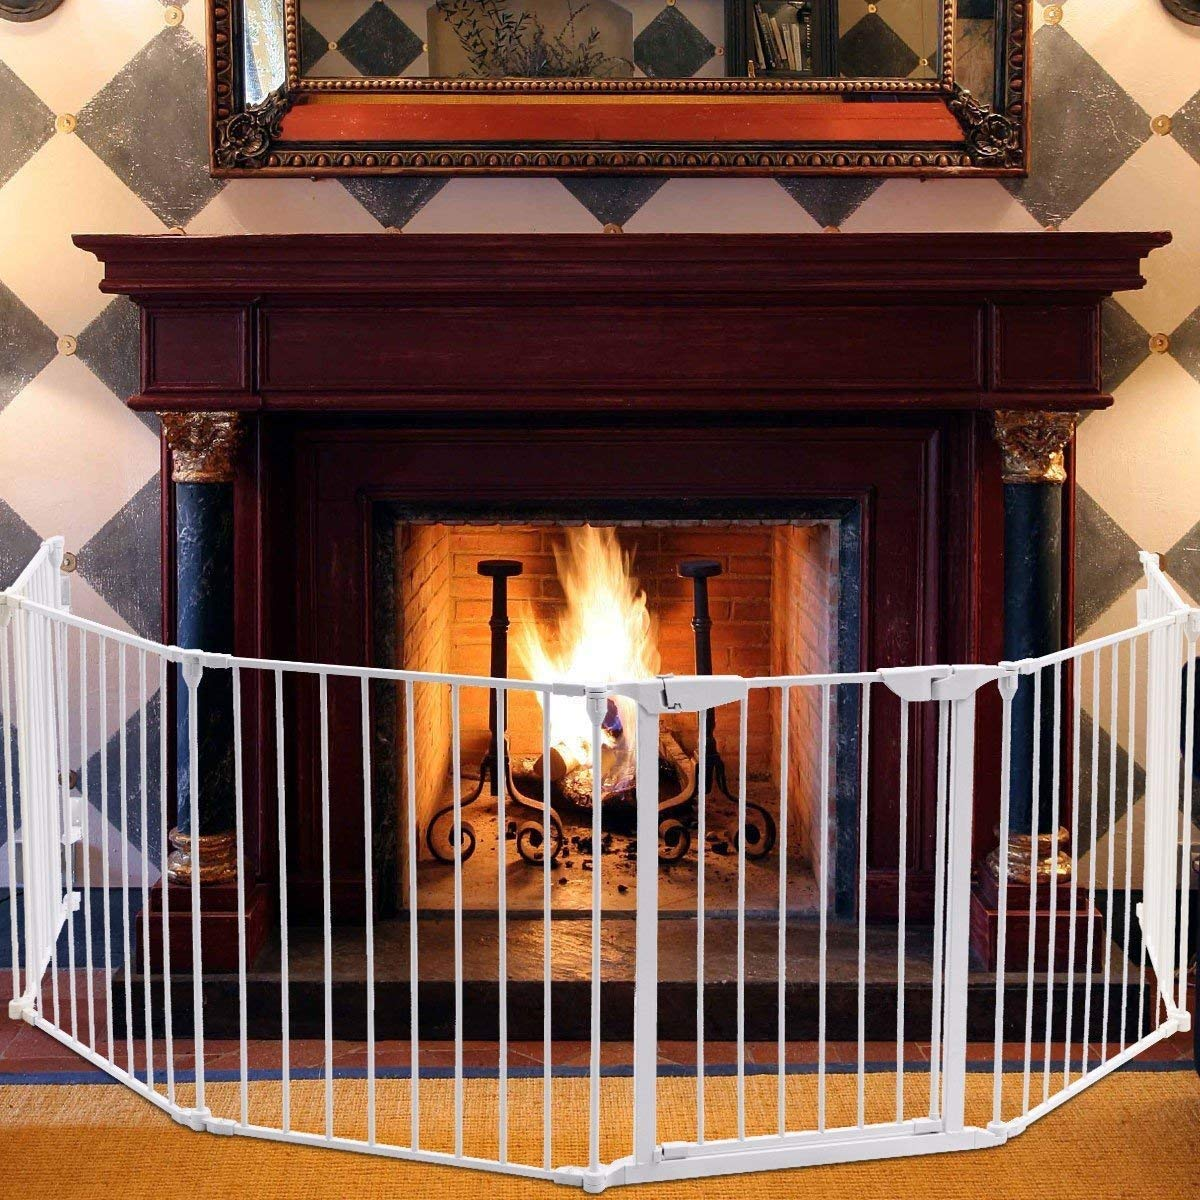 Teekland White Baby Safety Gate/Baby Protect Walls/Fireplace Fence/Dog Gates Indoor/Play Yard with Door,6 Panels Fireplace Extended Metal Fence for Pet/Toddler/Dog/Cat/Christmas Tree by Teekland (Image #4)